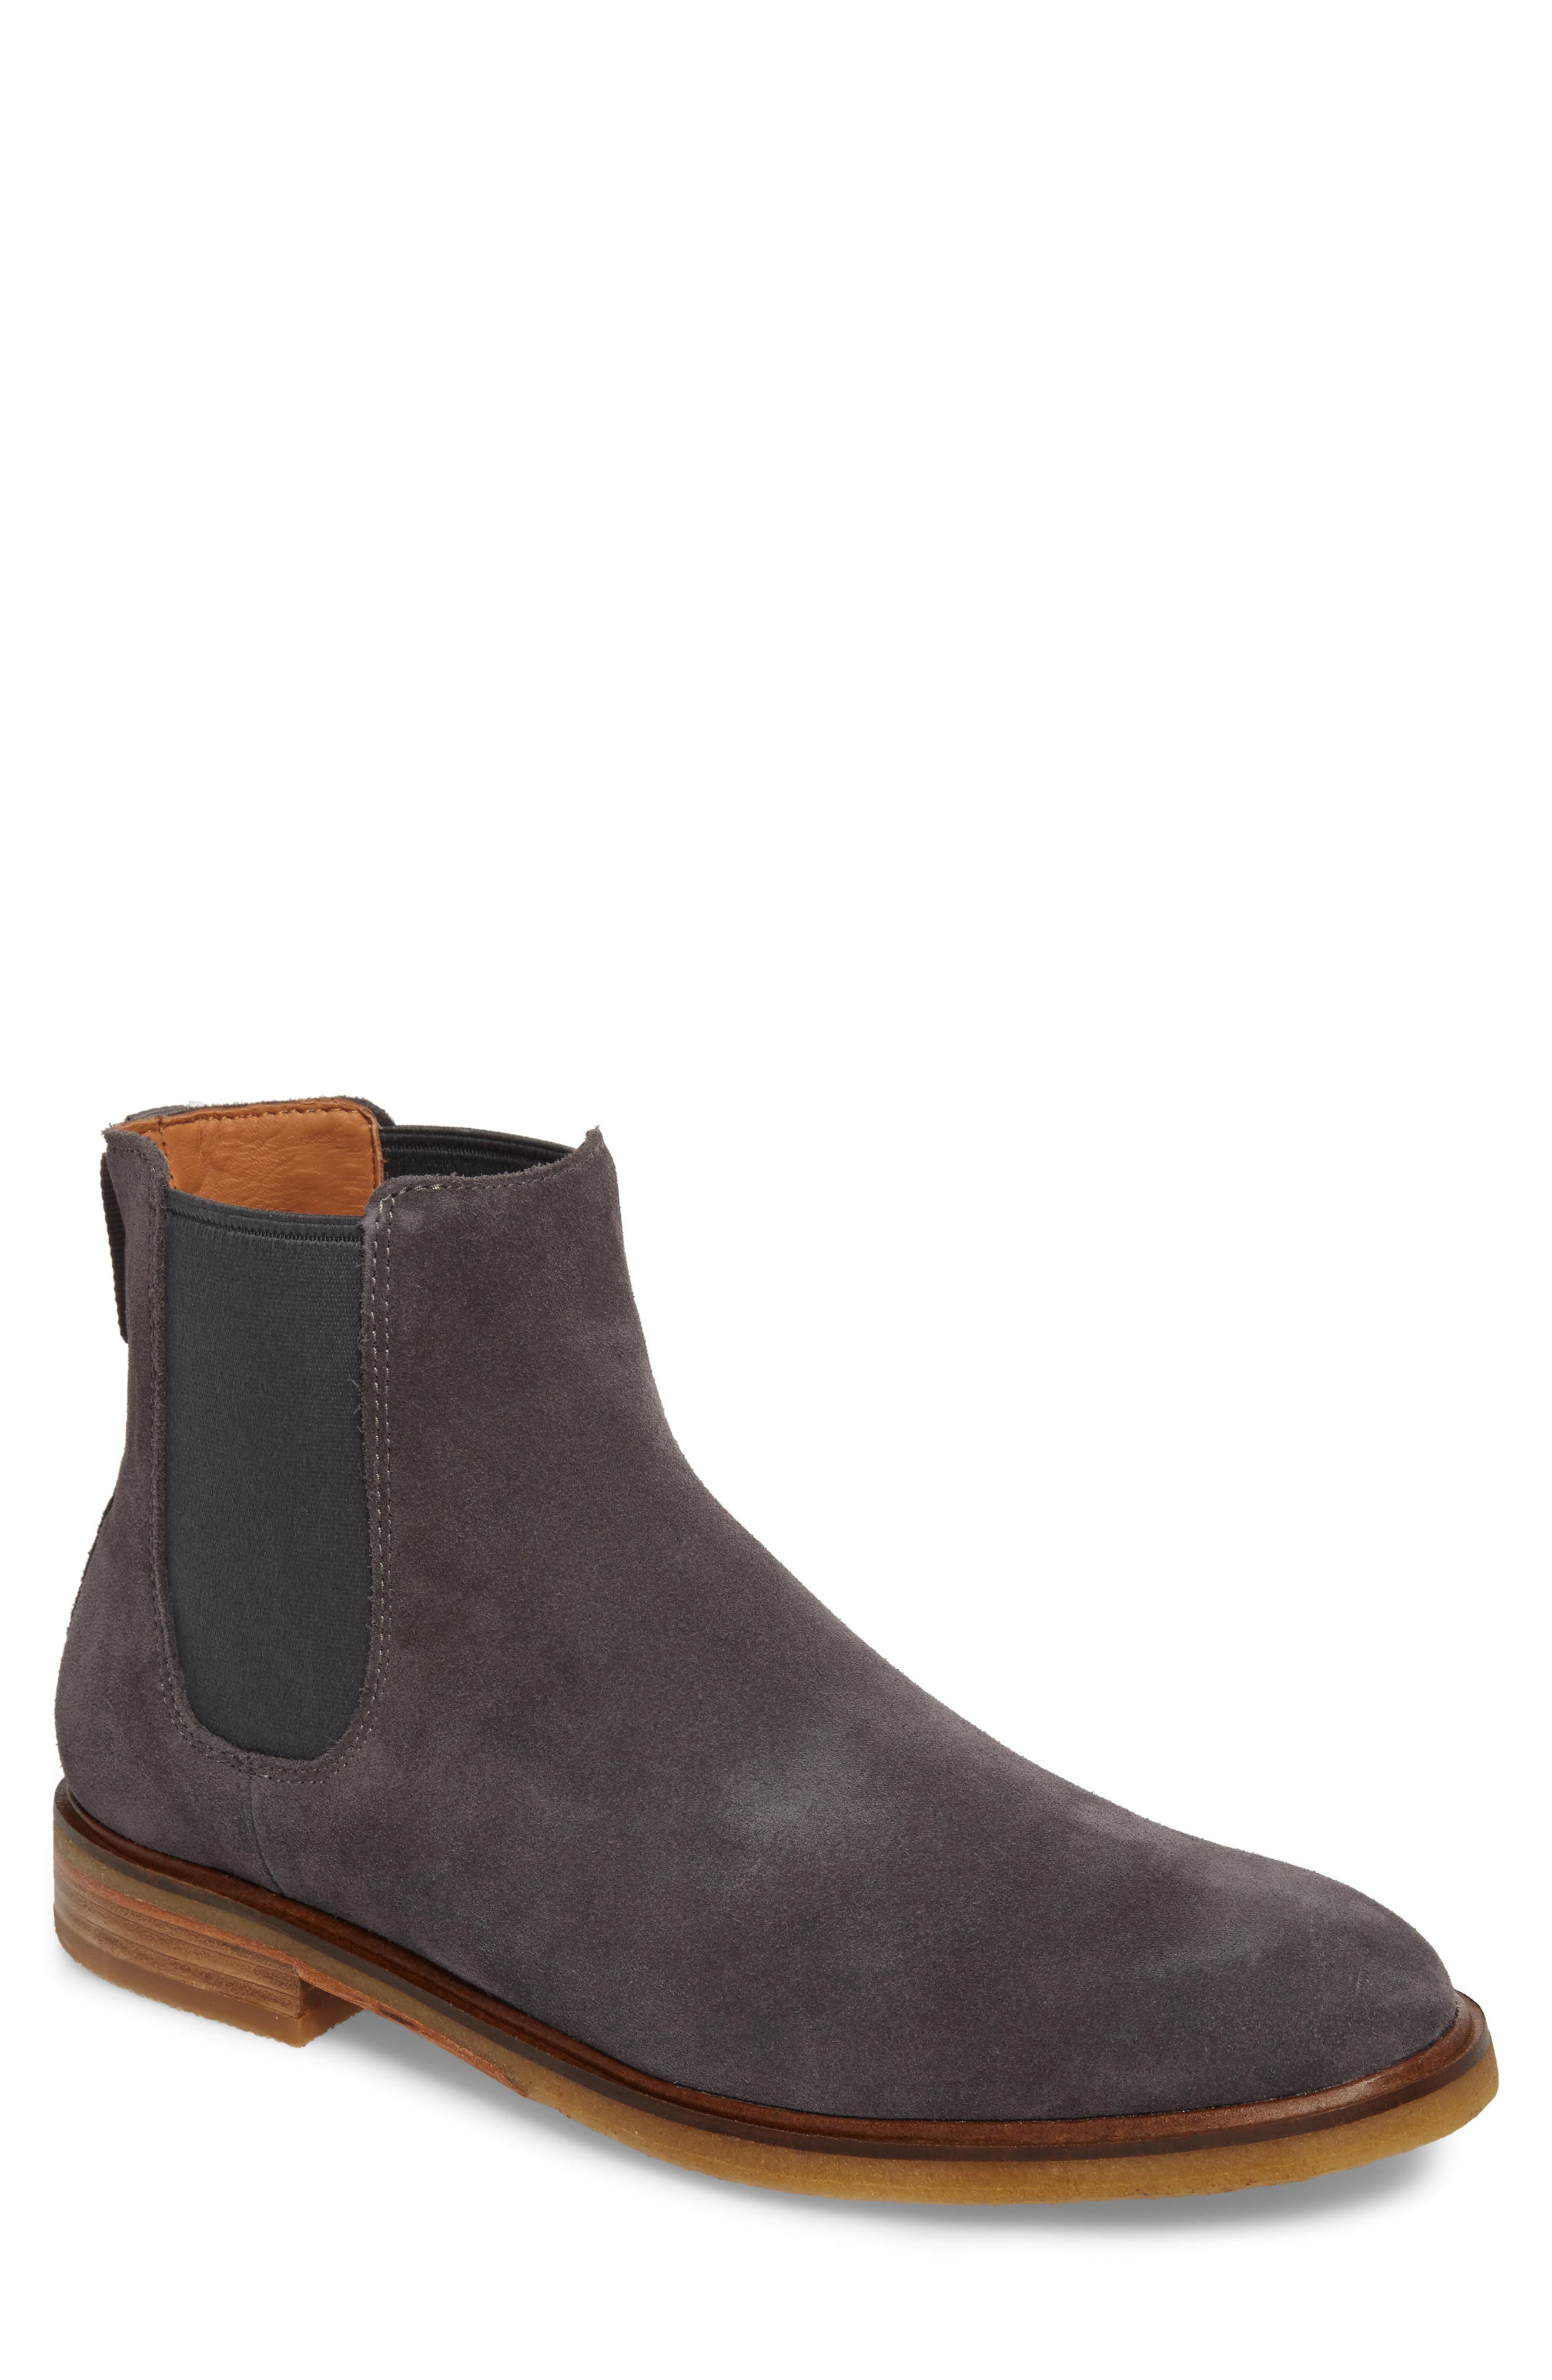 Clarkdale Chelsea Boot,                             Main thumbnail 1, color,                             Grey Suede